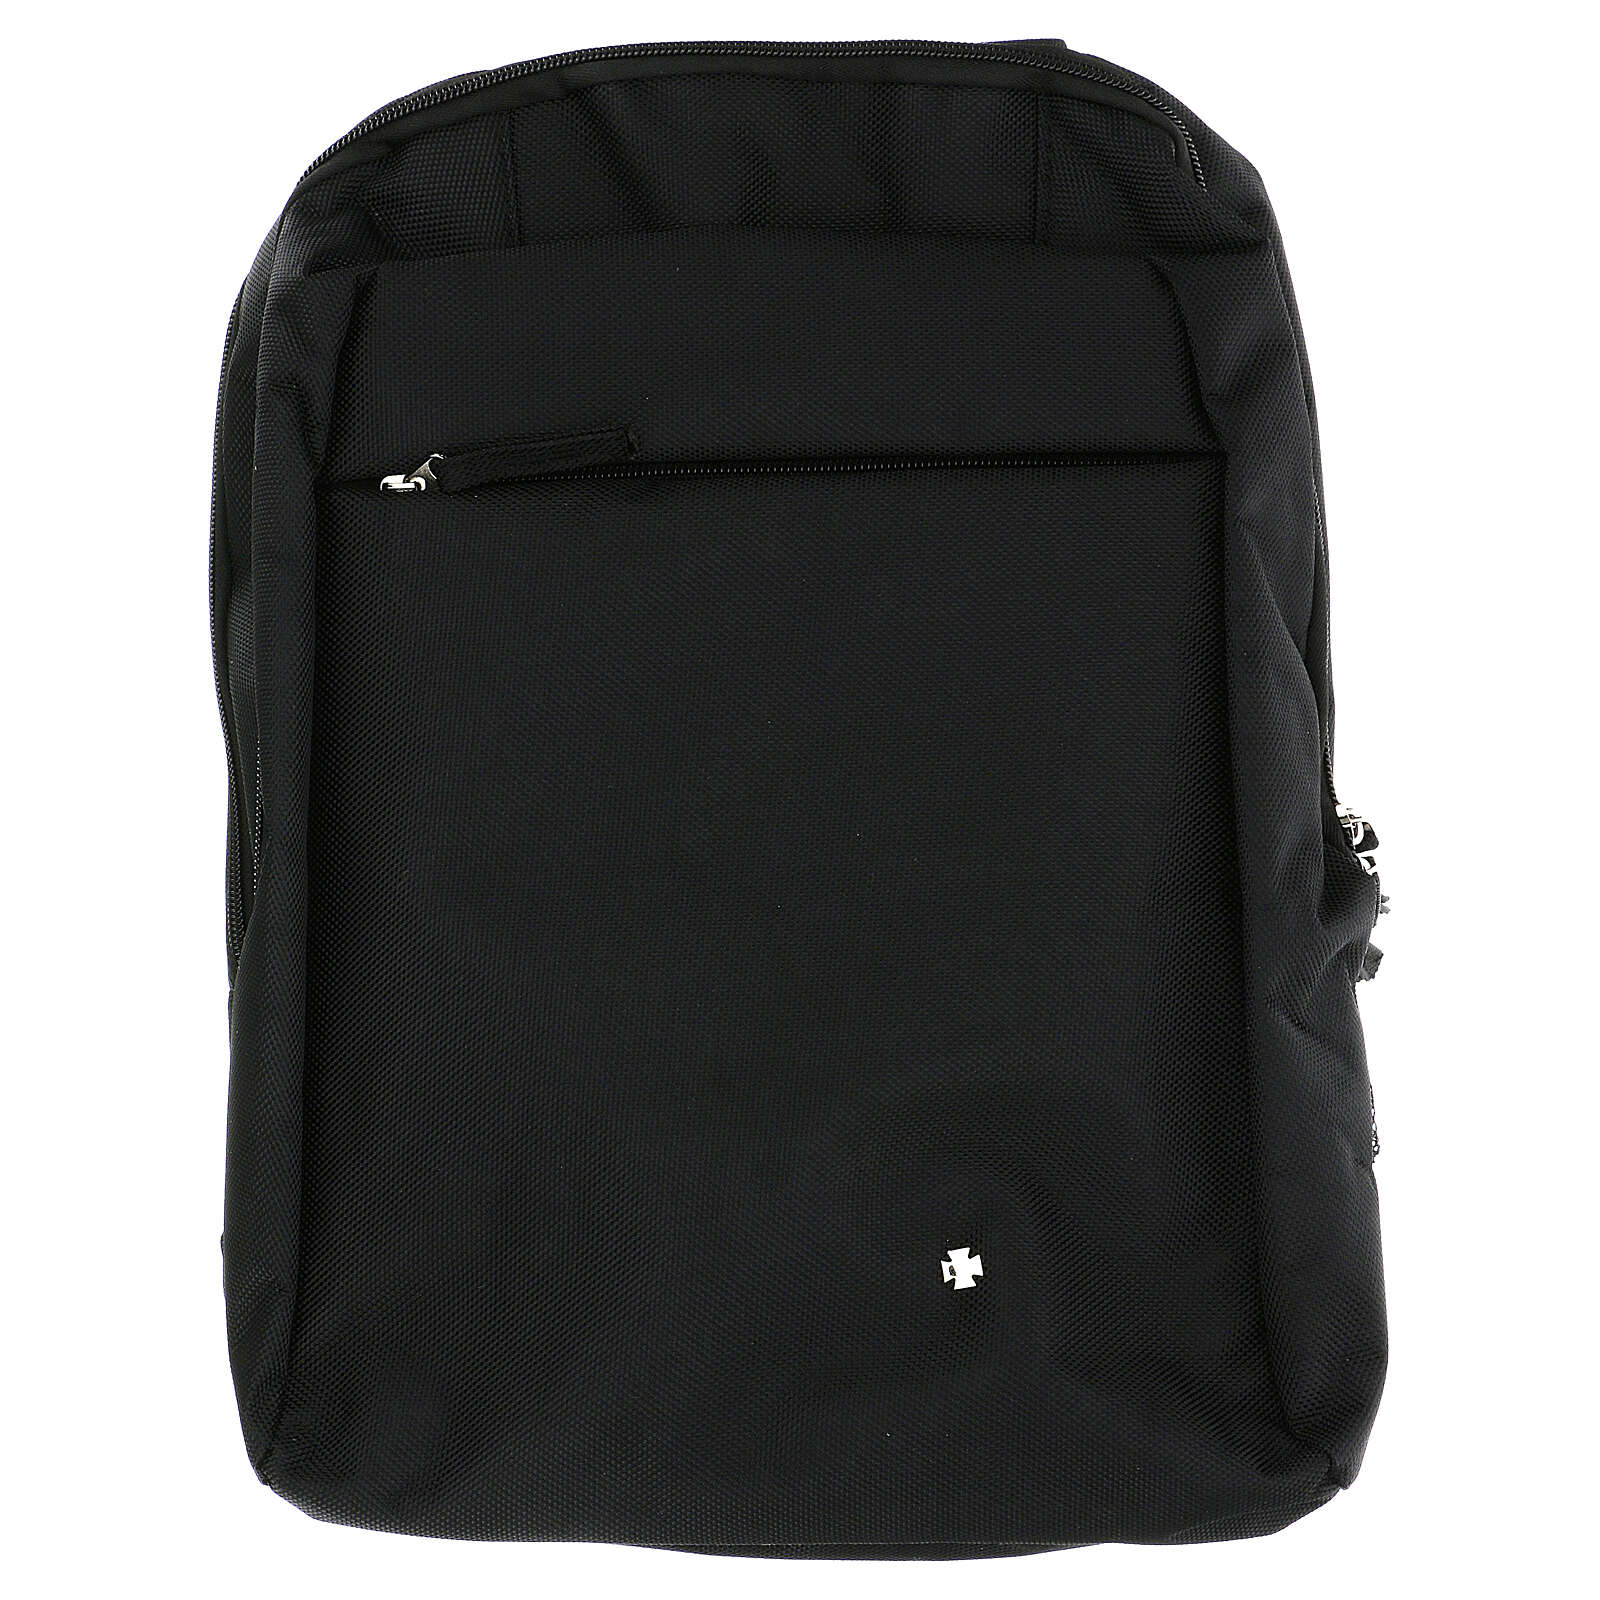 Mass kit backpack with red jacquard interior 3